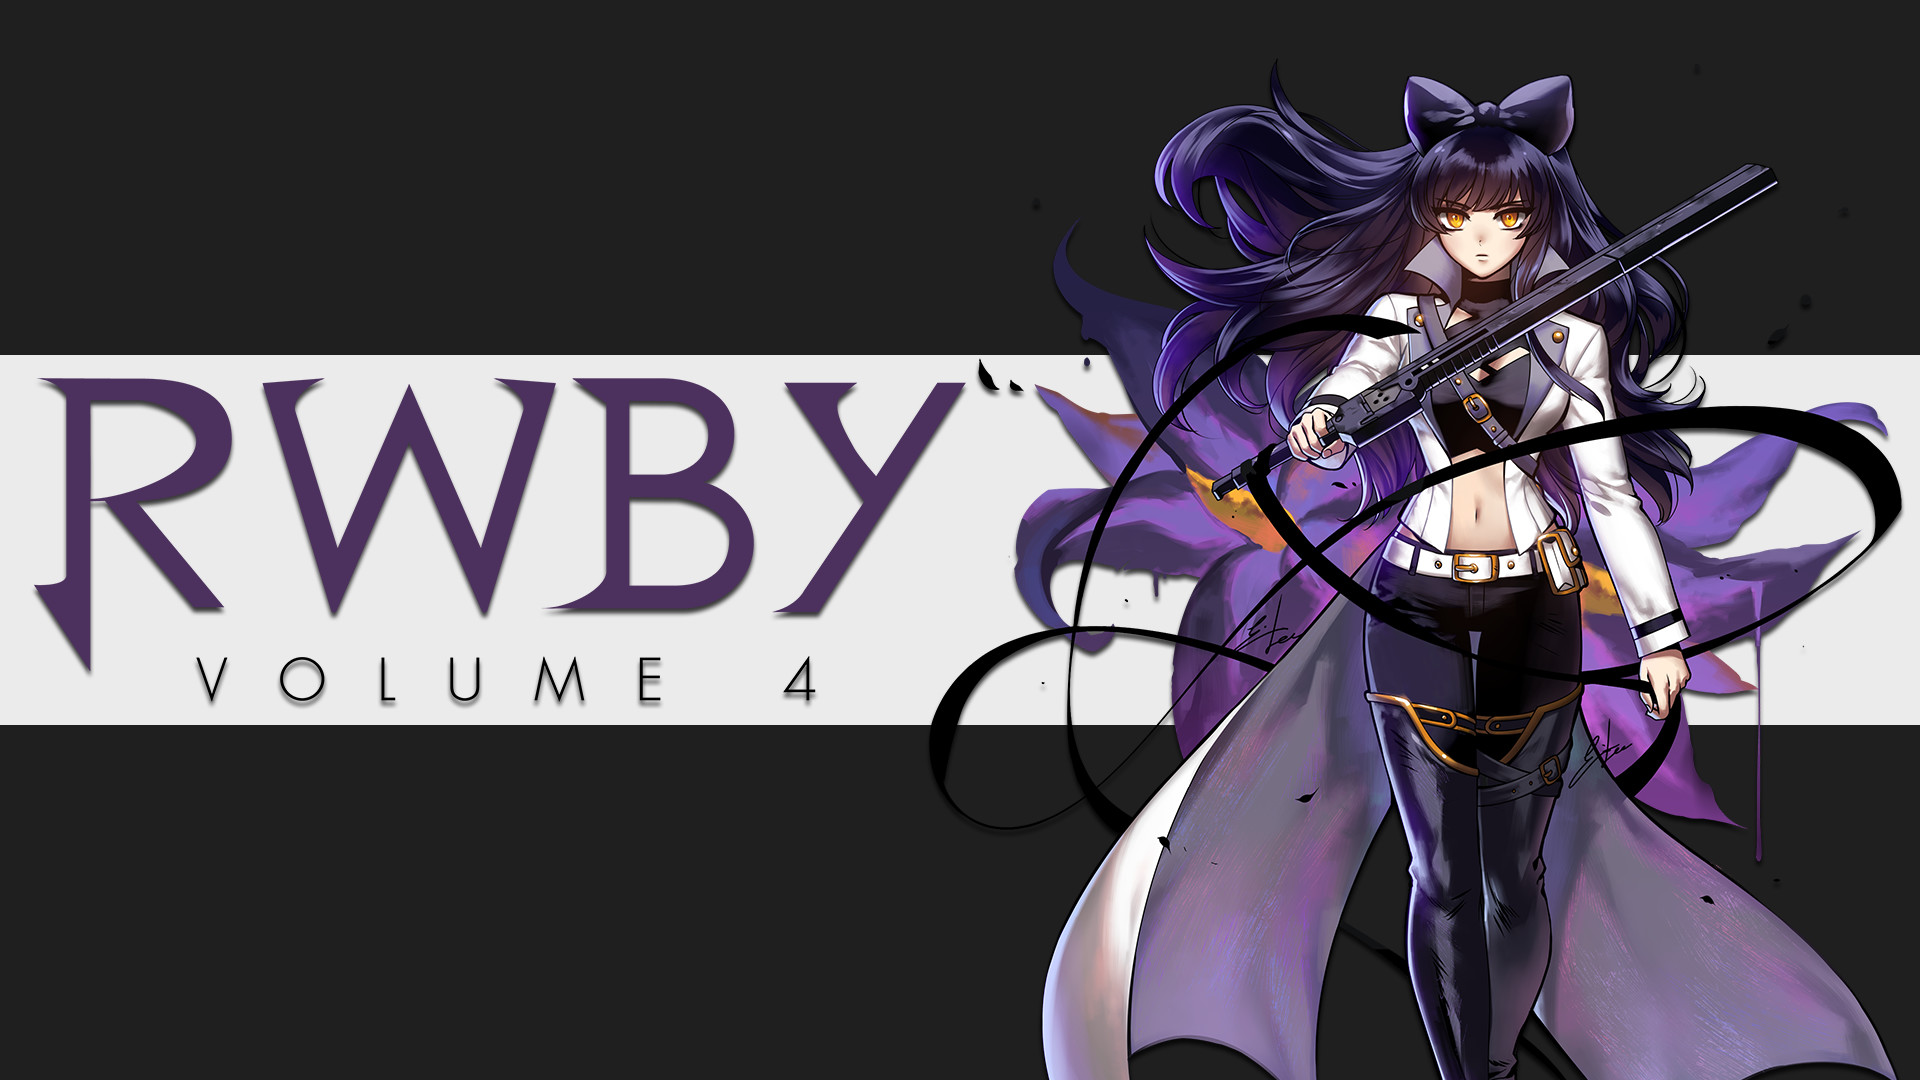 1920x1080 Blake Belladonna by jimrichards42 Blake Belladonna by jimrichards42